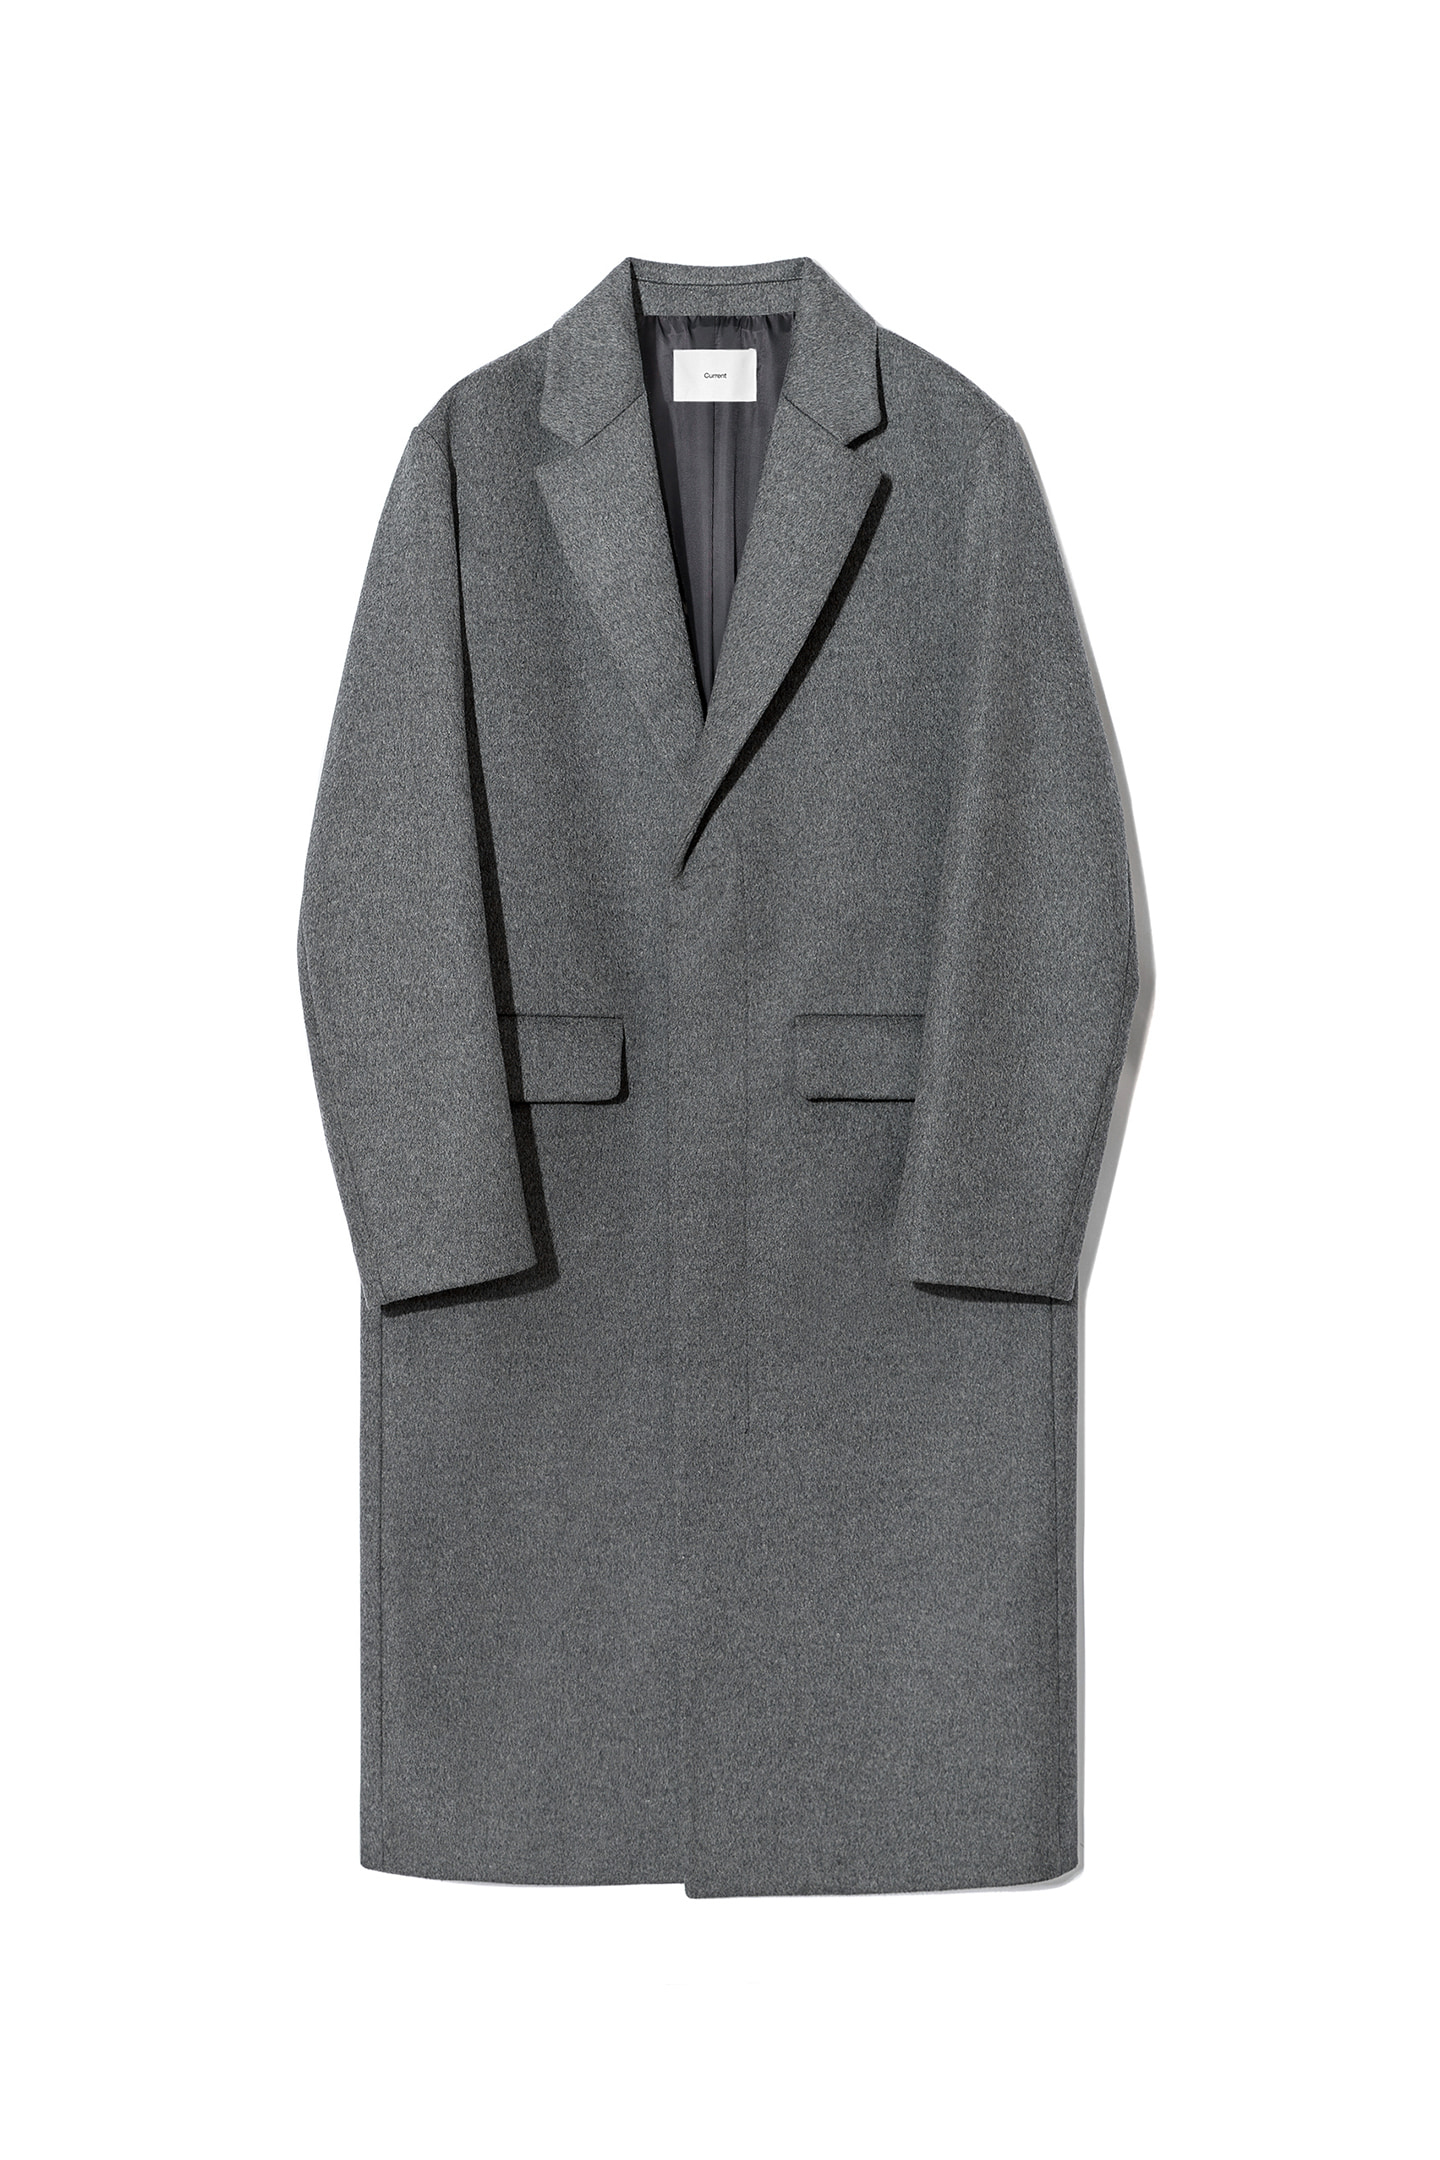 Cashmere Single Coat Men [Charcoal Gray]